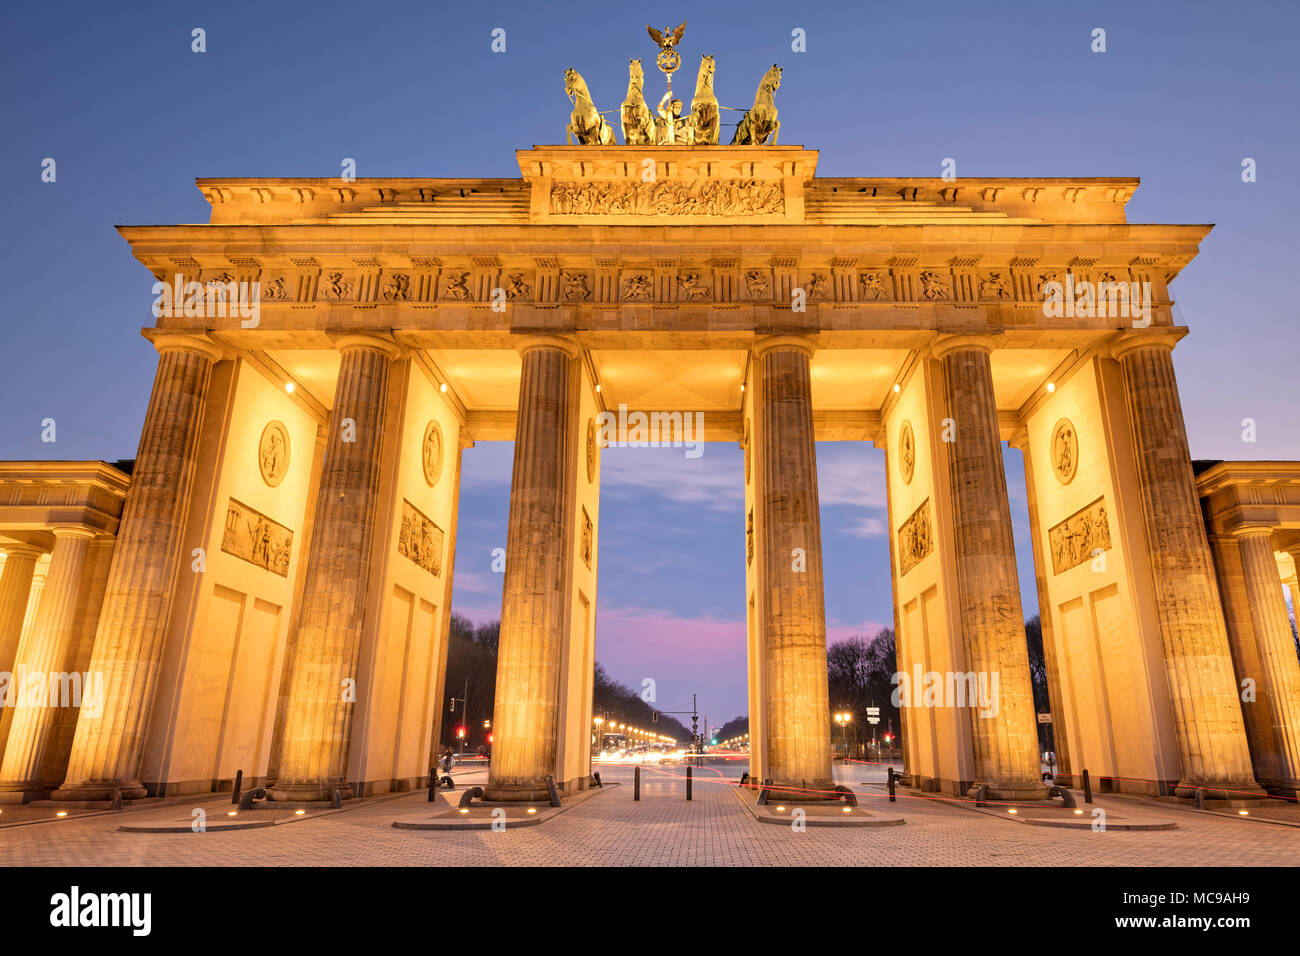 The Brandenburg Gate is an 18th-century neoclassical landmark monument situated to the west of Pariser Platz in the western part of Berlin. - Stock Image